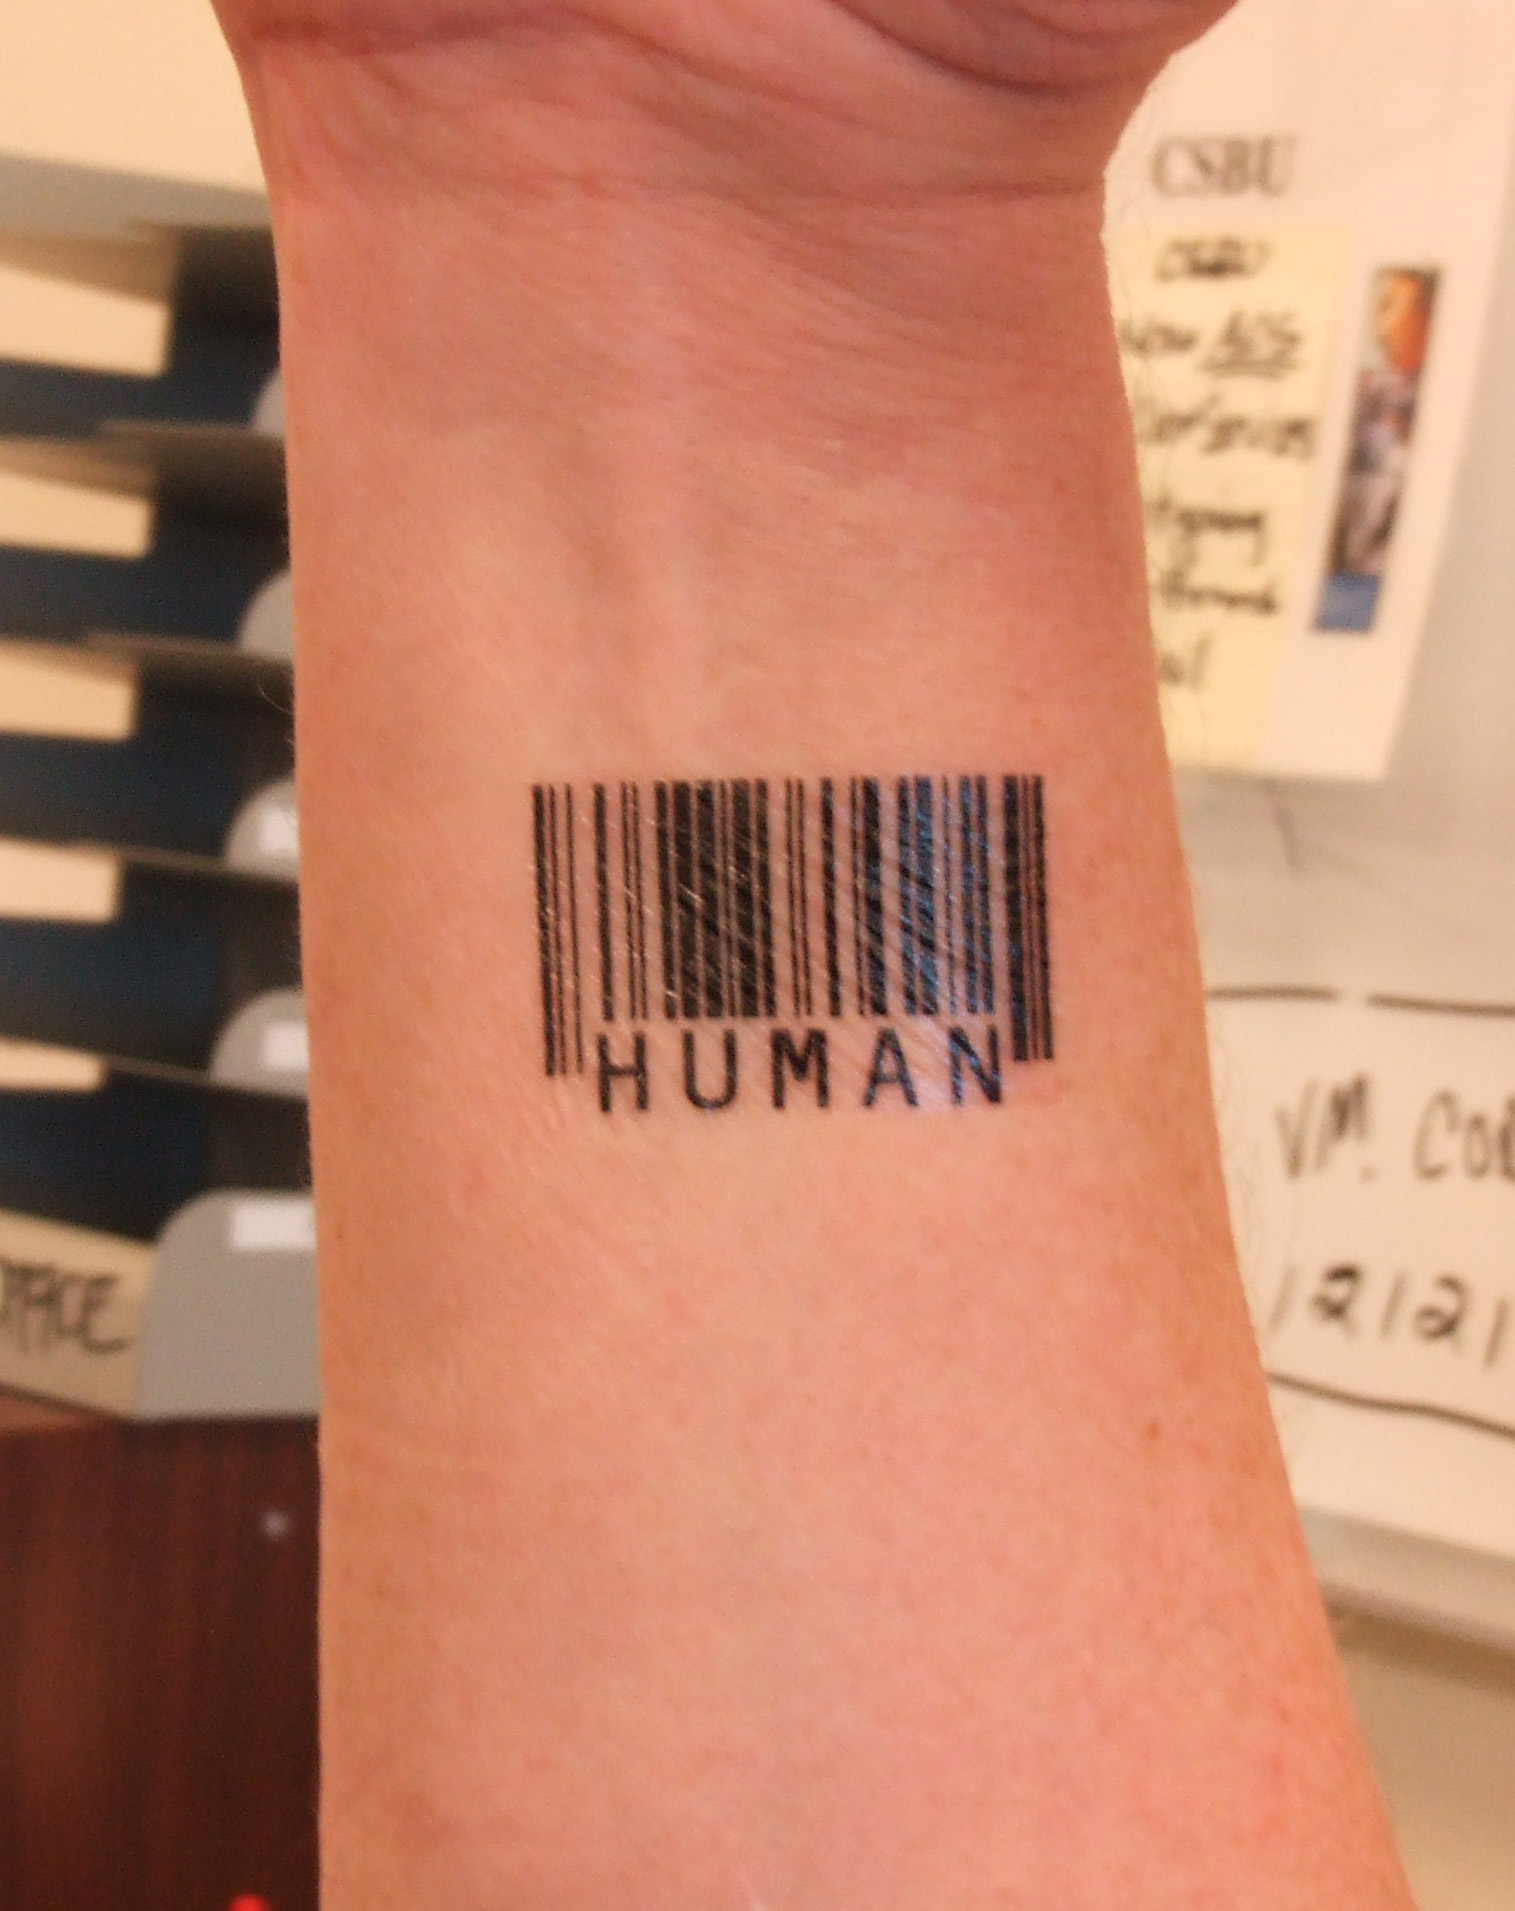 Barcode tattoo prostitute